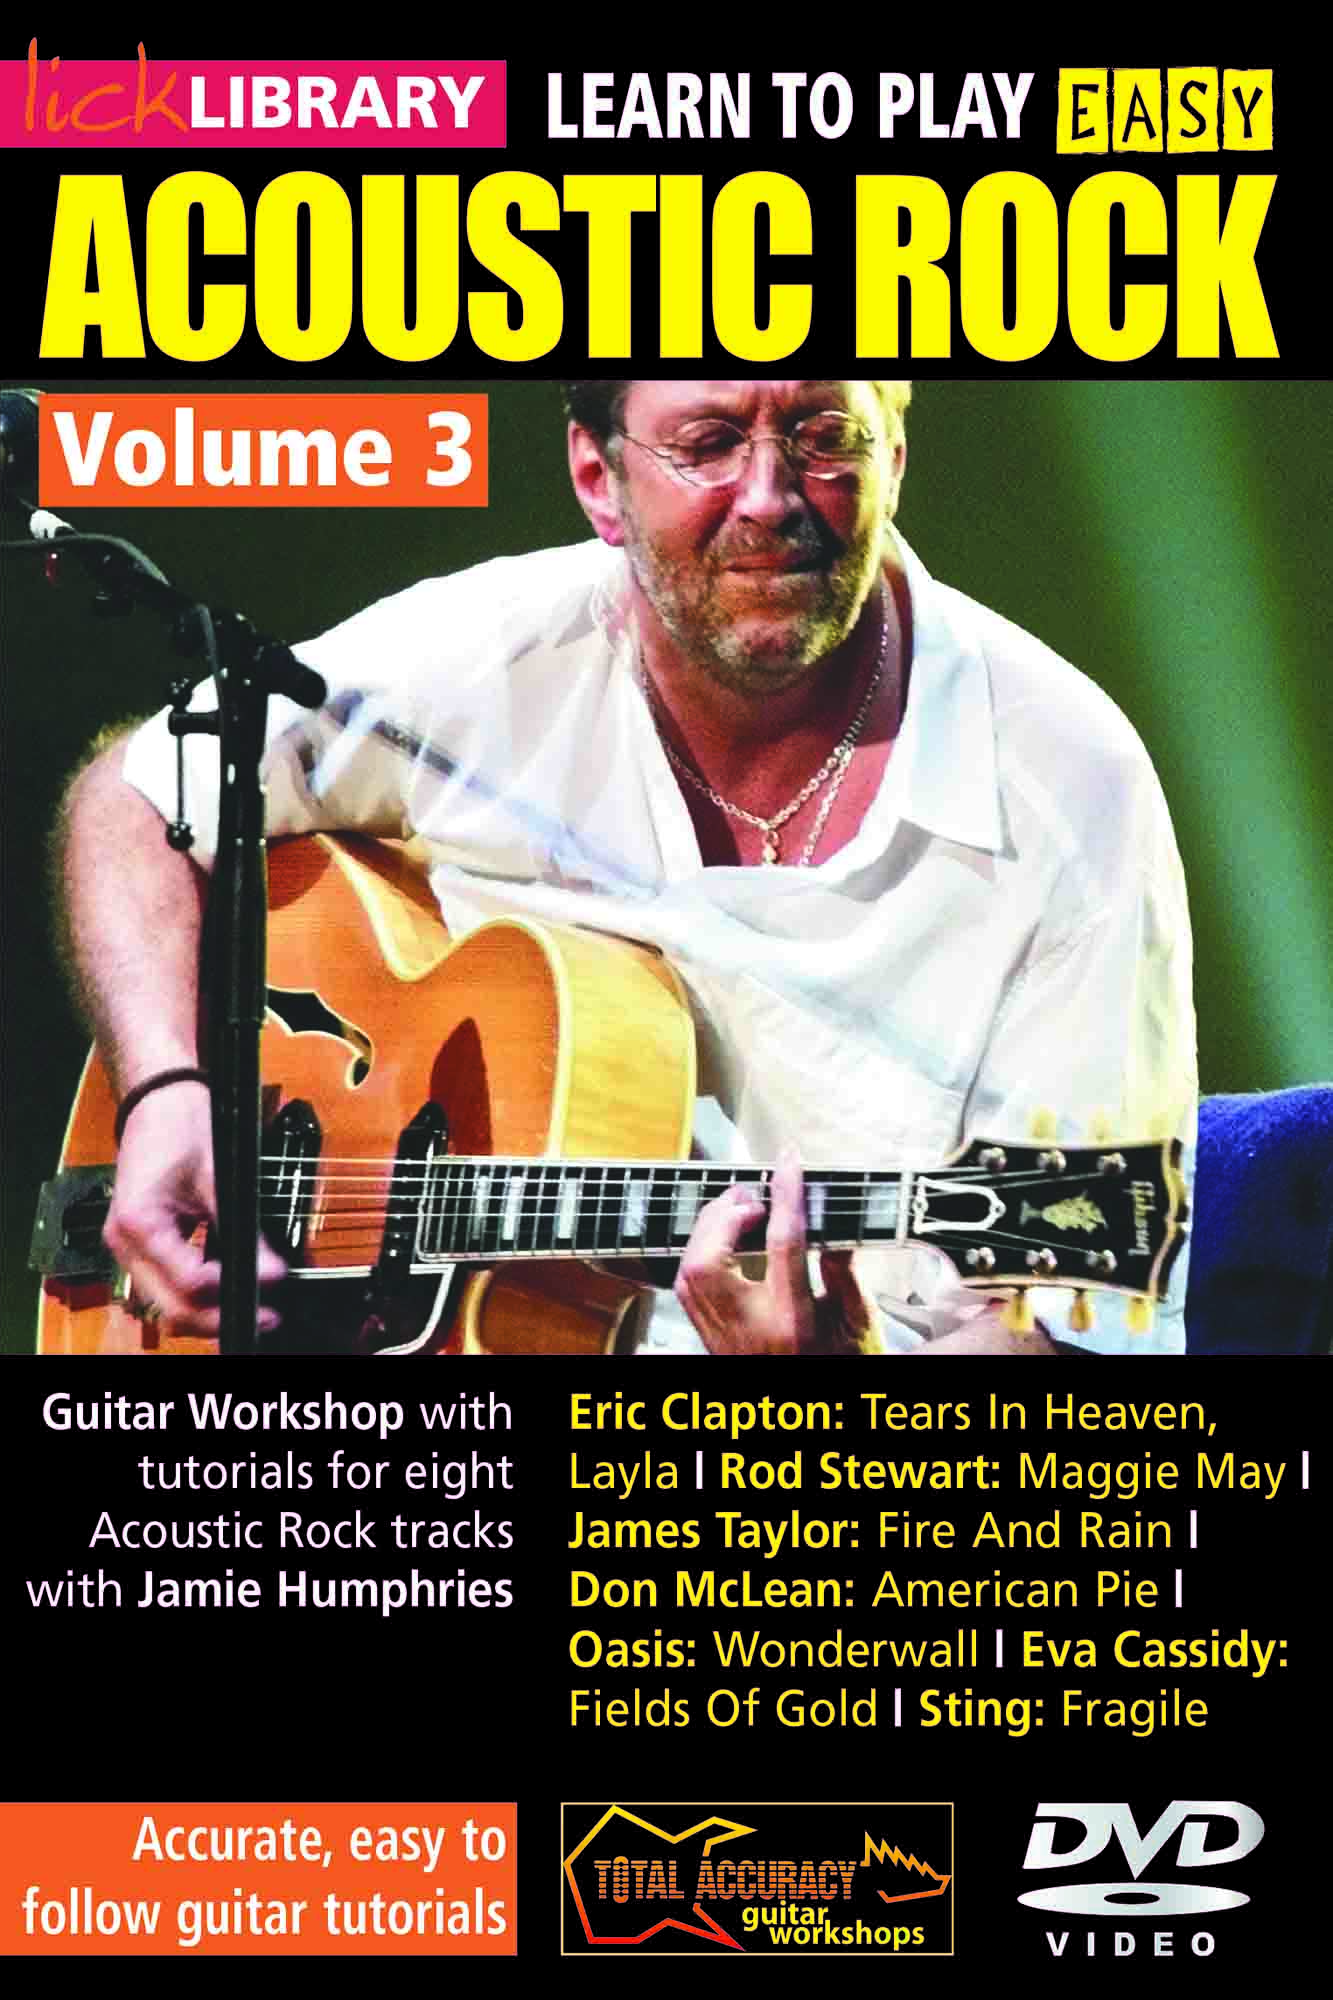 Learn To Play Easy Acoustic Rock Volume 3